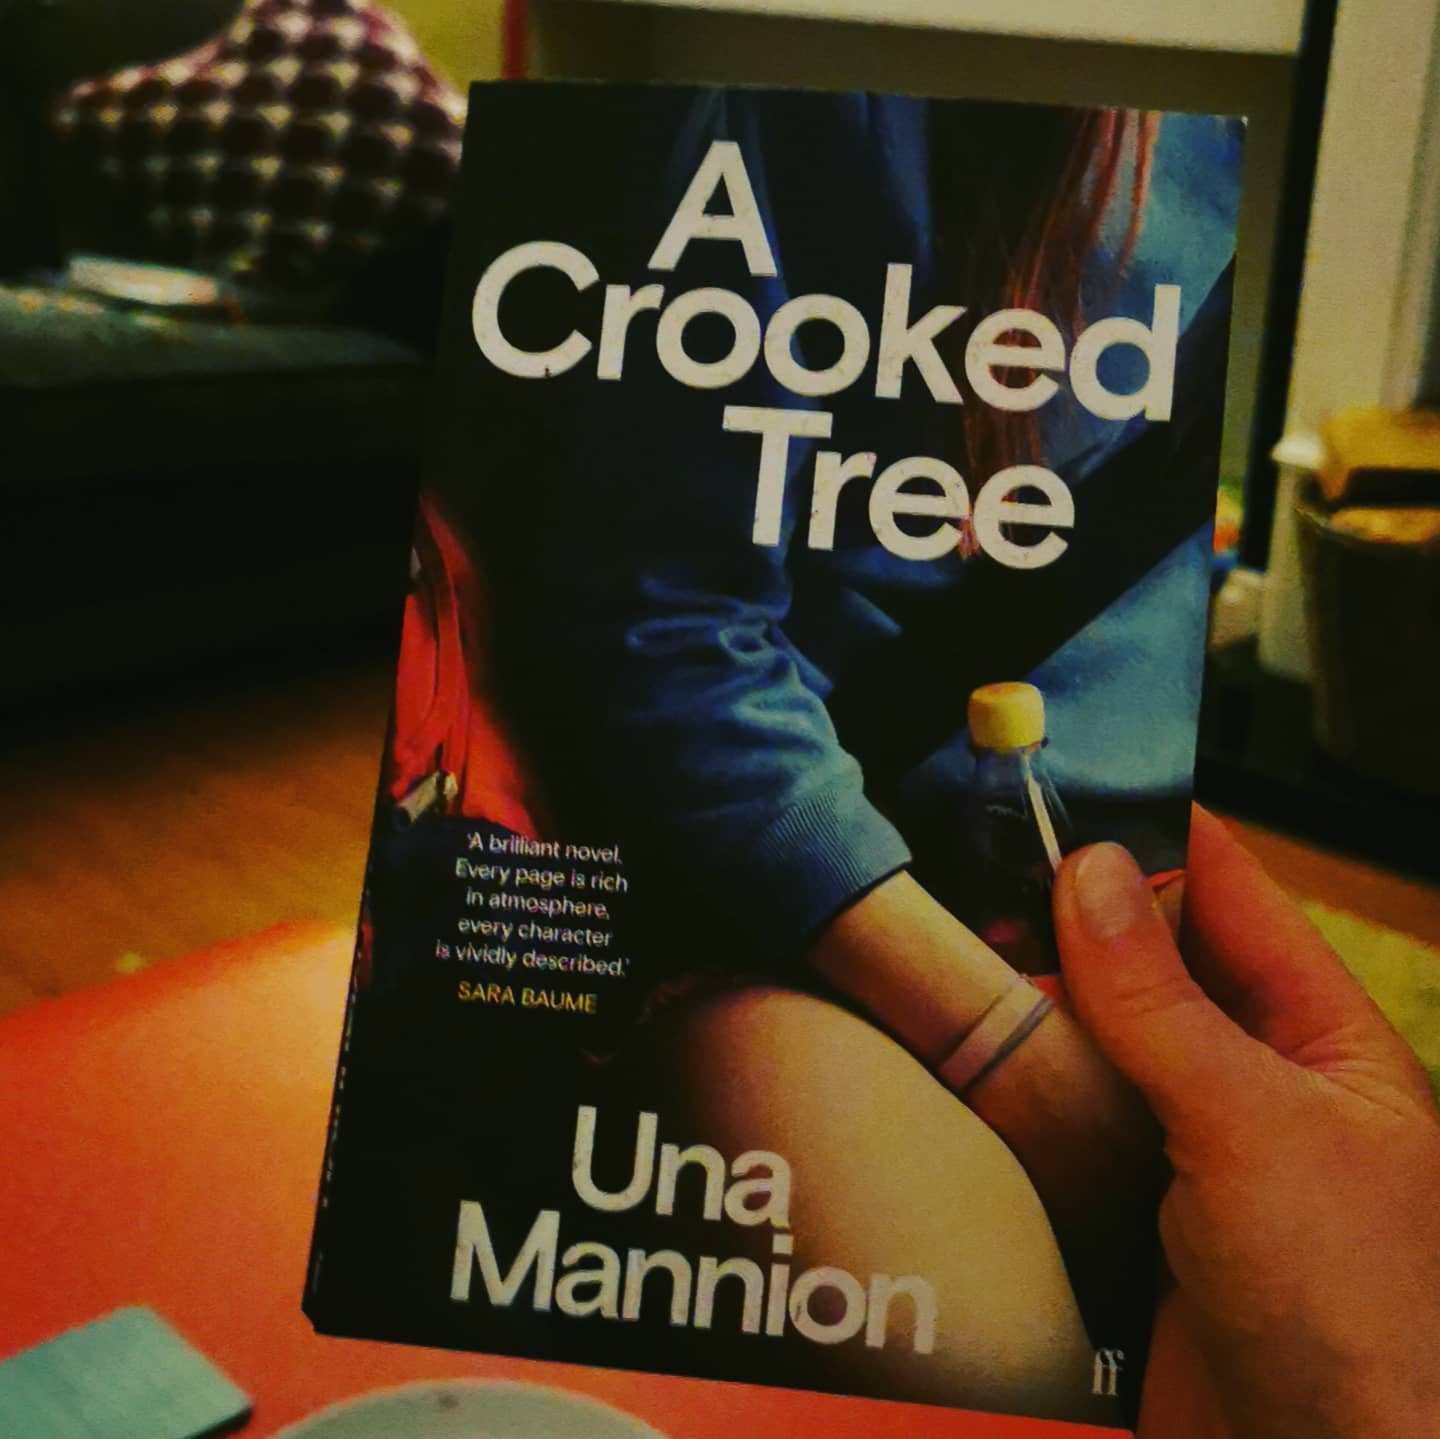 A Crooked Tree by Una Mannion.  I have always admired Una's short fiction so I was excited to get my hands on her debut novel. It doesn't disappoint though it's a slow, slow start and it remains slow but by the time you get to end, you will enjoy that relaxed pace as it suits the story and the characters.  Libby is out for a drive at night with her siblings. Her mother is driving. We feel the tension but when Ellen, Libby's younger sister frustrates her frazzled mum, her mum basically dumps Ellen on the roadside and speeds off.   The story rocks on from this one awful decision and we learn about Libby and her connection with her father who has passed away.  This novel, set in an 80s rural Philadelphia, has all the feels of a  Goonies movie or an episode of Stranger Things. Una's writing never falters but I found the descriptions of nature and trees a little bit lengthy at times. It's clear she revels in writing about nature.  Overal, I found it to be a mesmerising read. Una's writing is carefully placed throughout and her plotting is excellent.